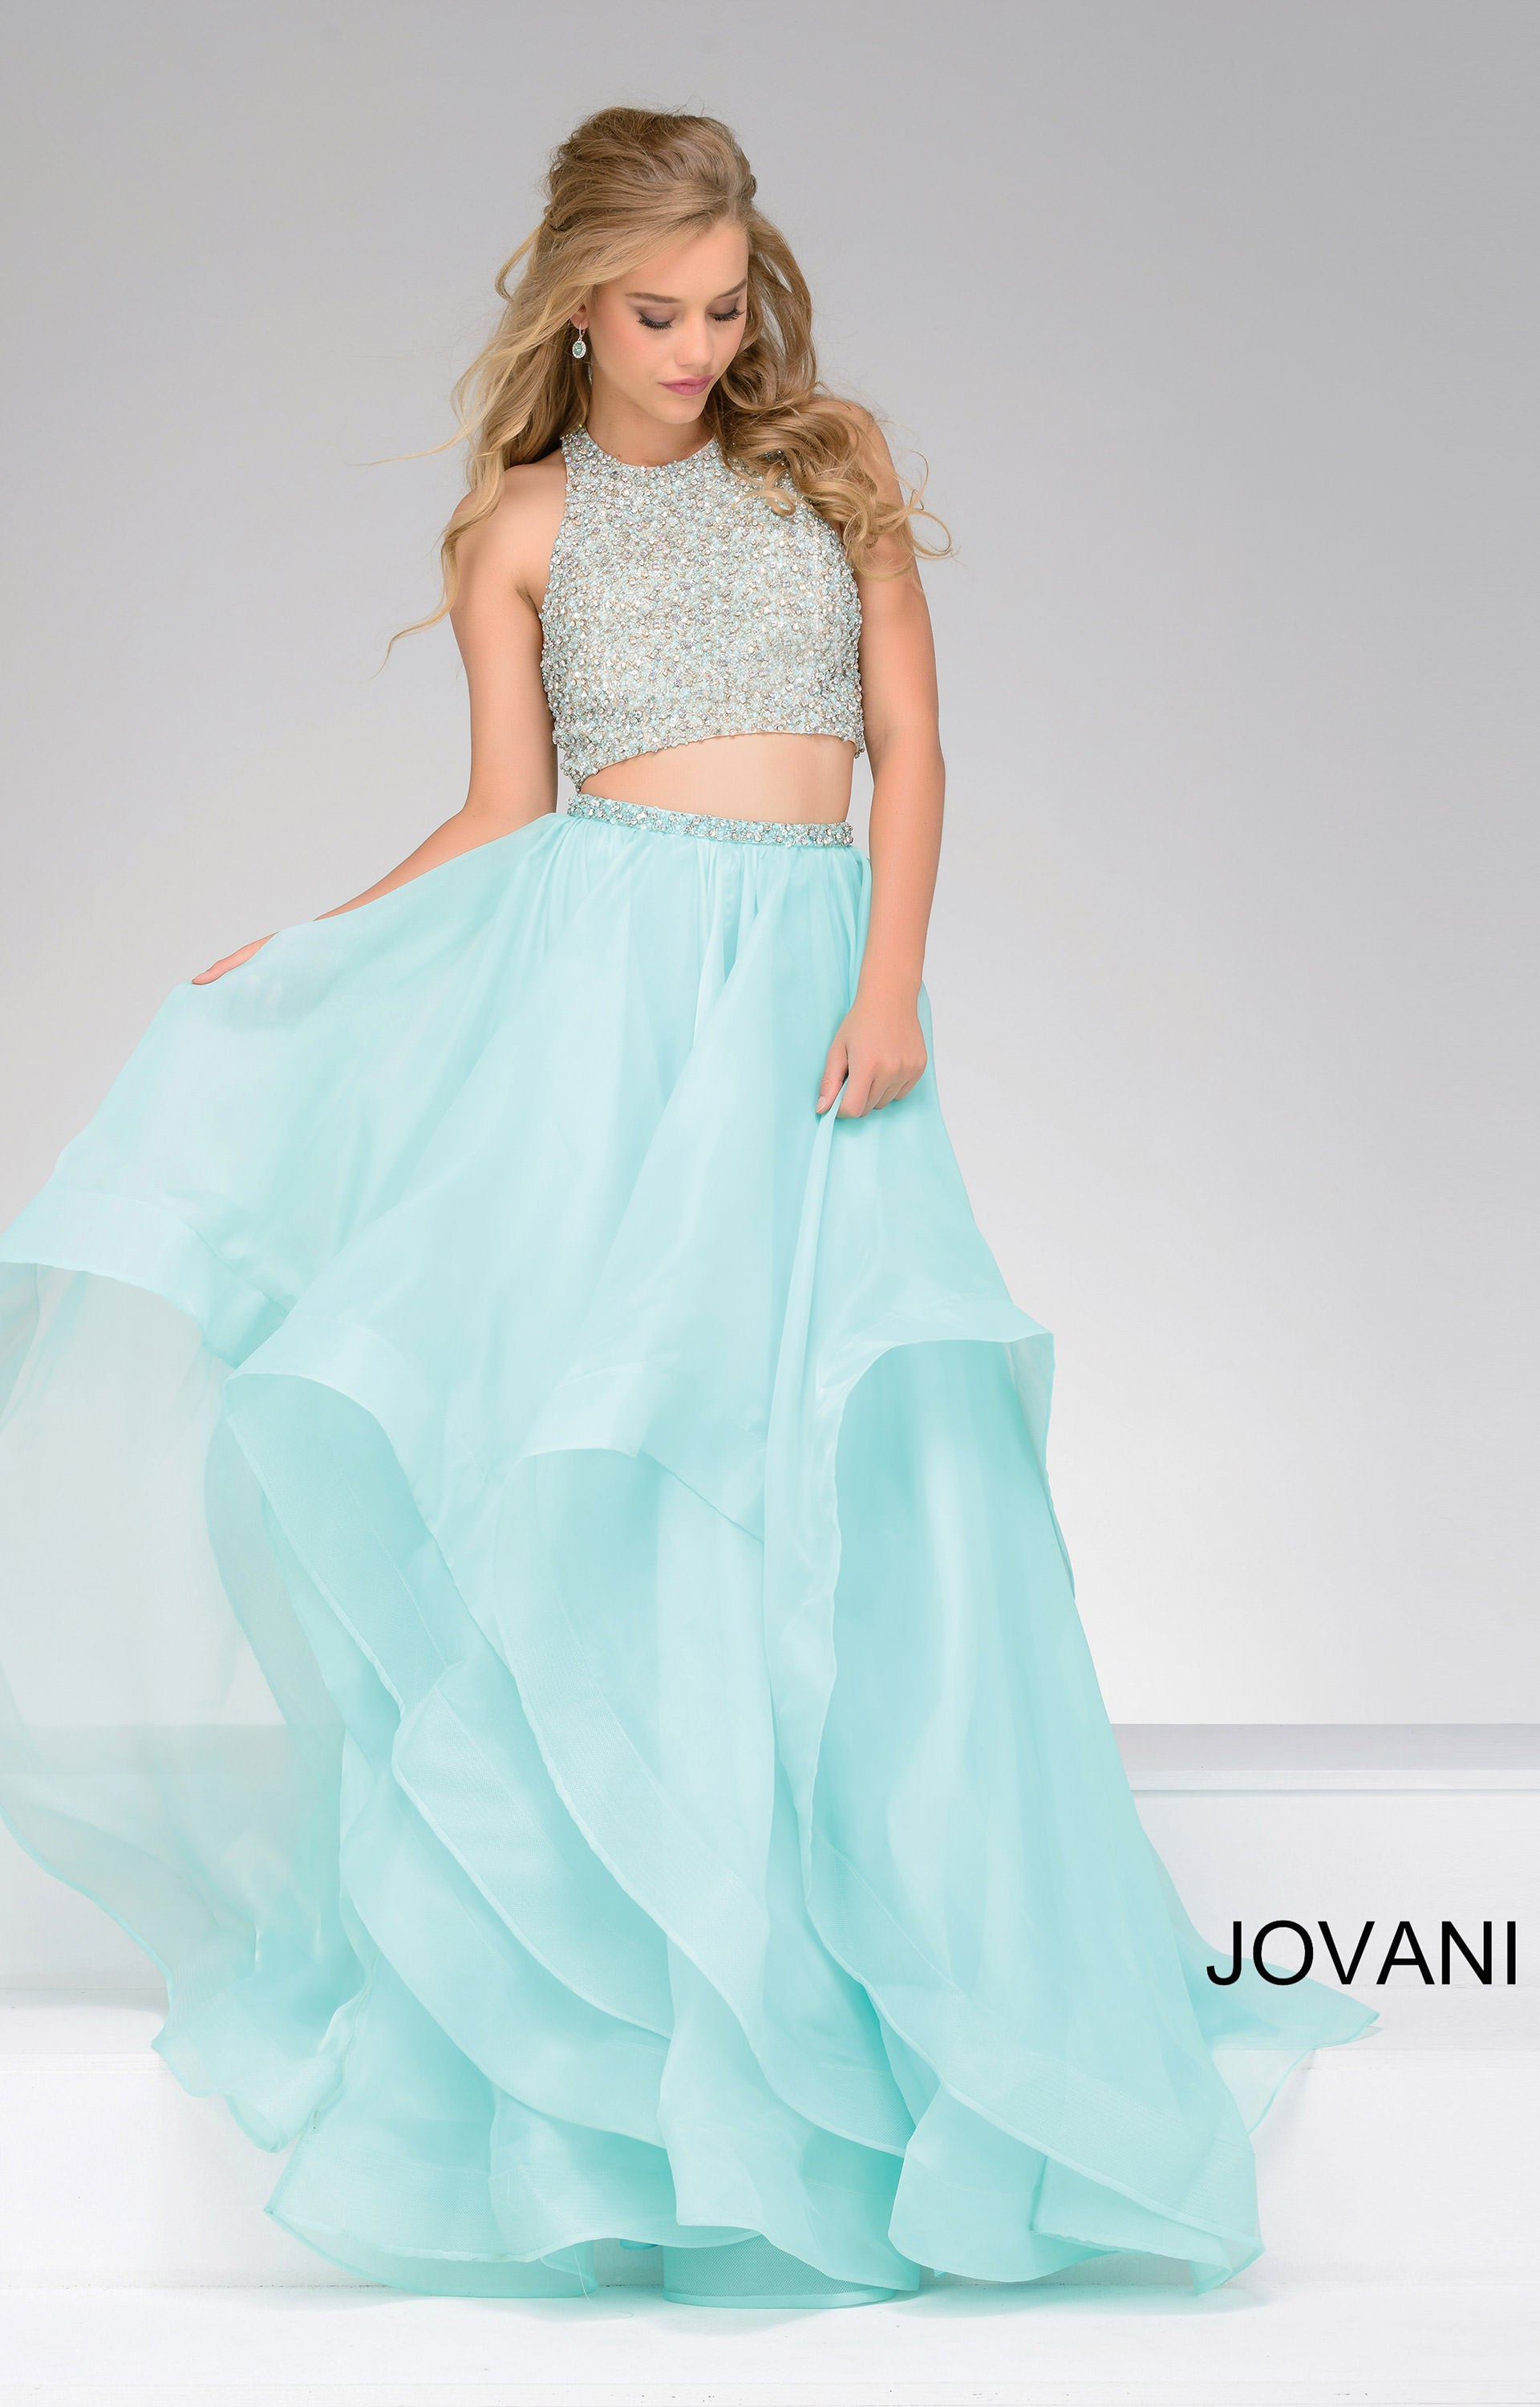 Jovani 33220 - 2 Piece Beaded Halter top with Tulle Layered Skirt ...